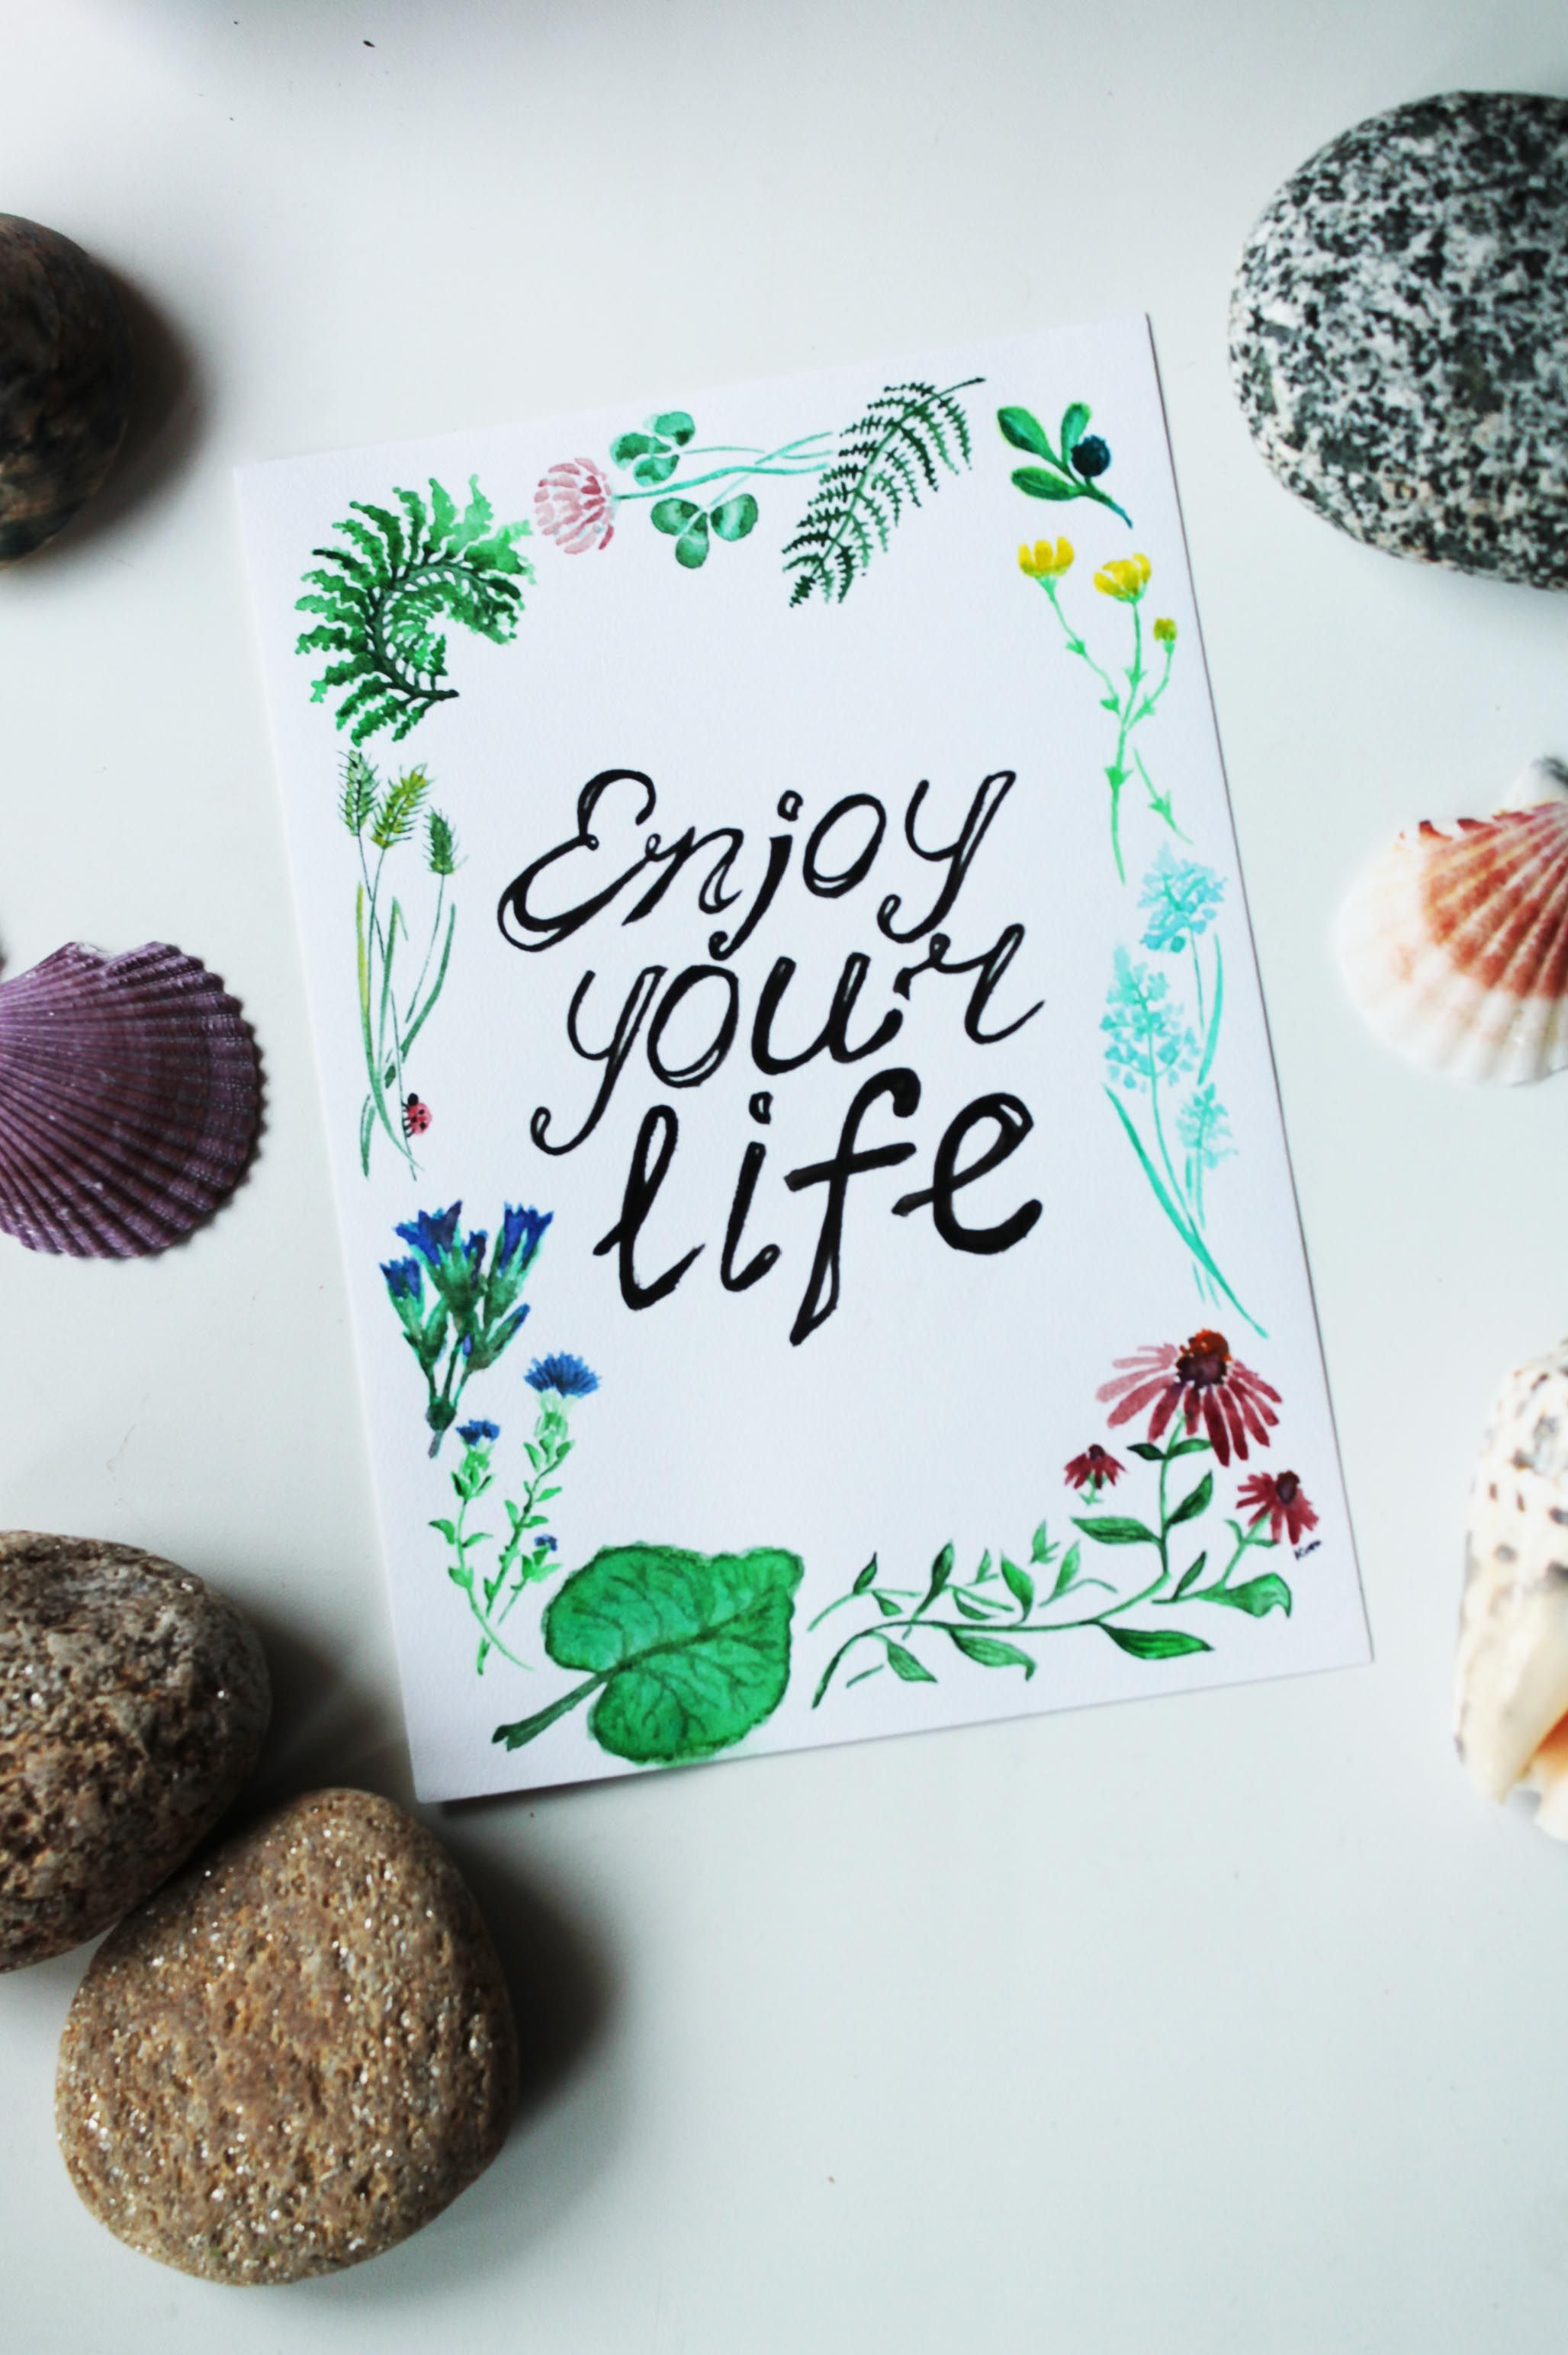 Enjoy your life! My new watercolor postcard :)